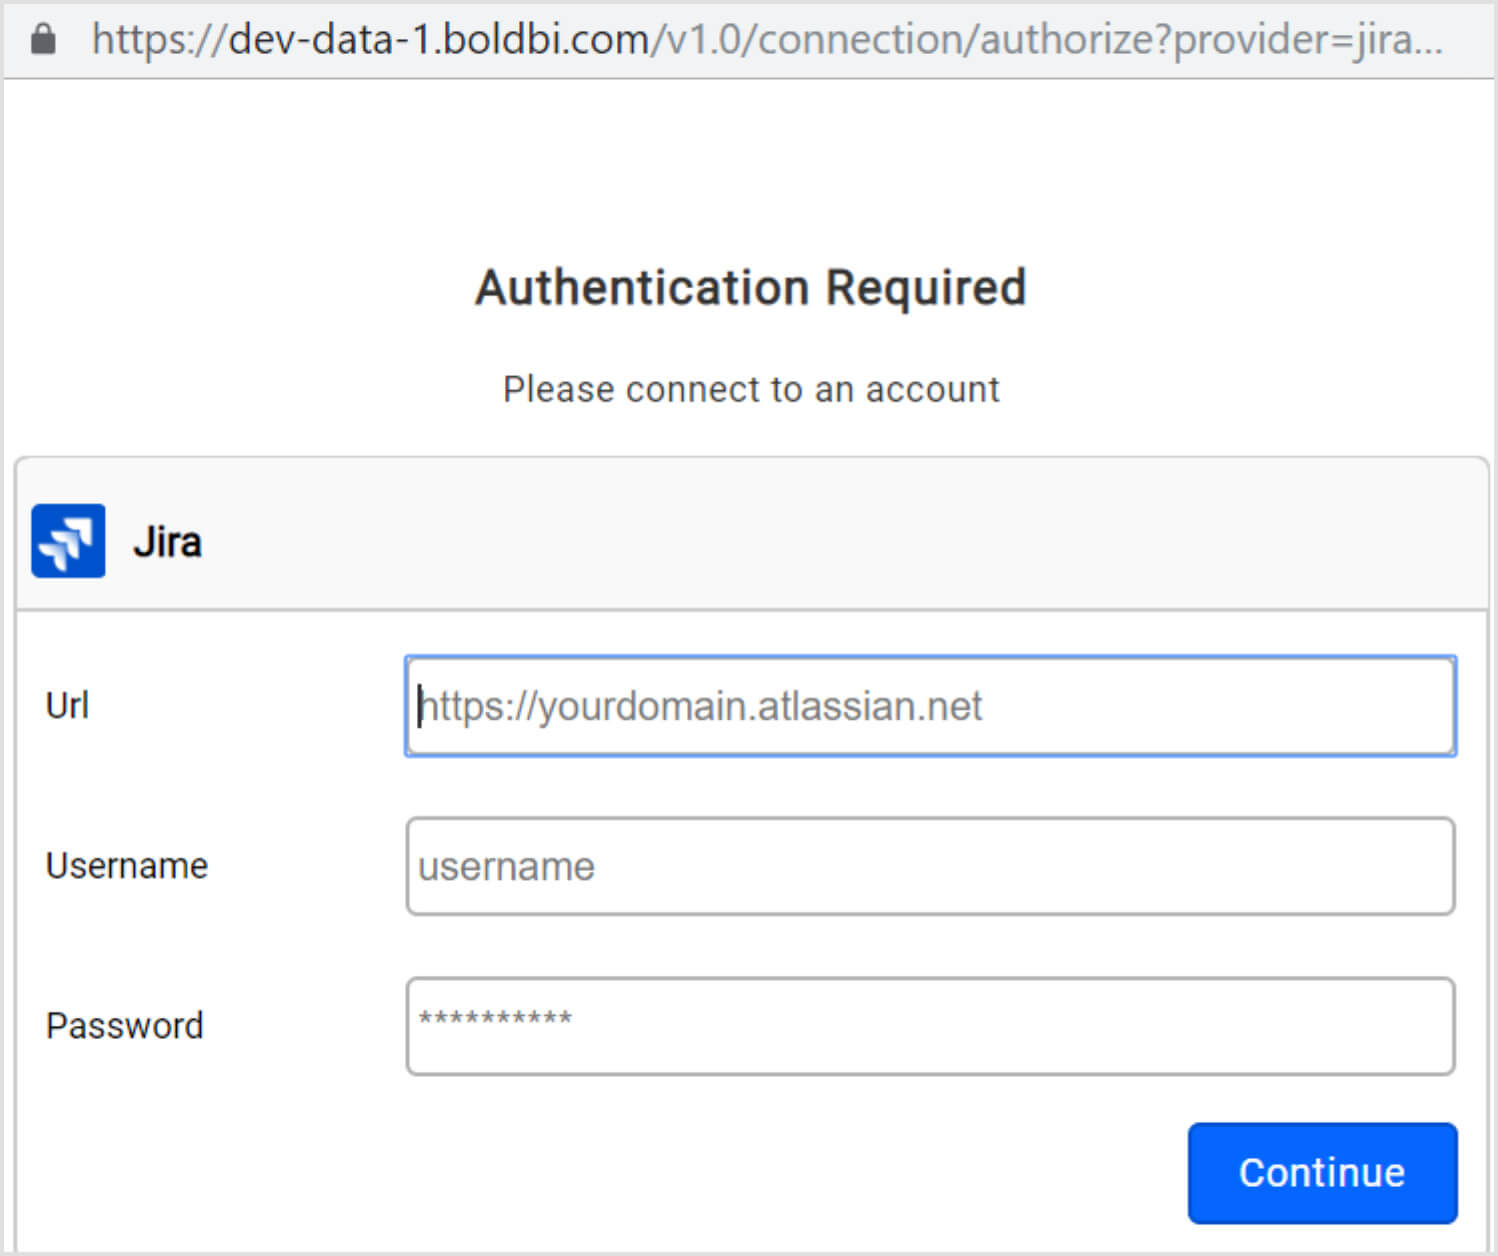 Authorization page for Jira connection